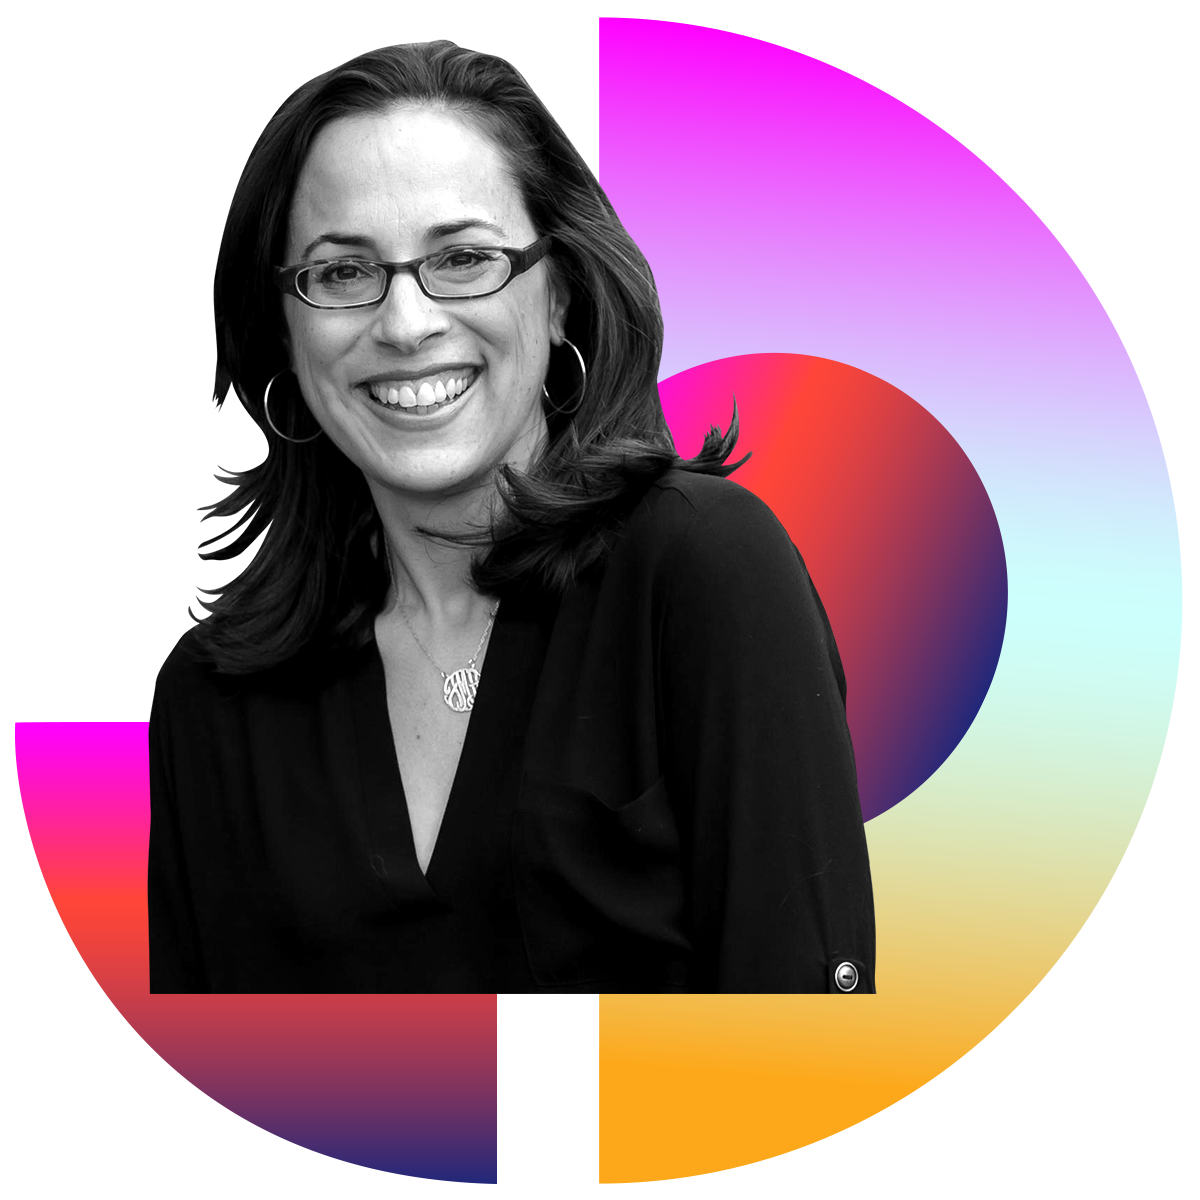 Photo illustration of Jennifer Mendelsohn in black and white surrounded by colored gradients